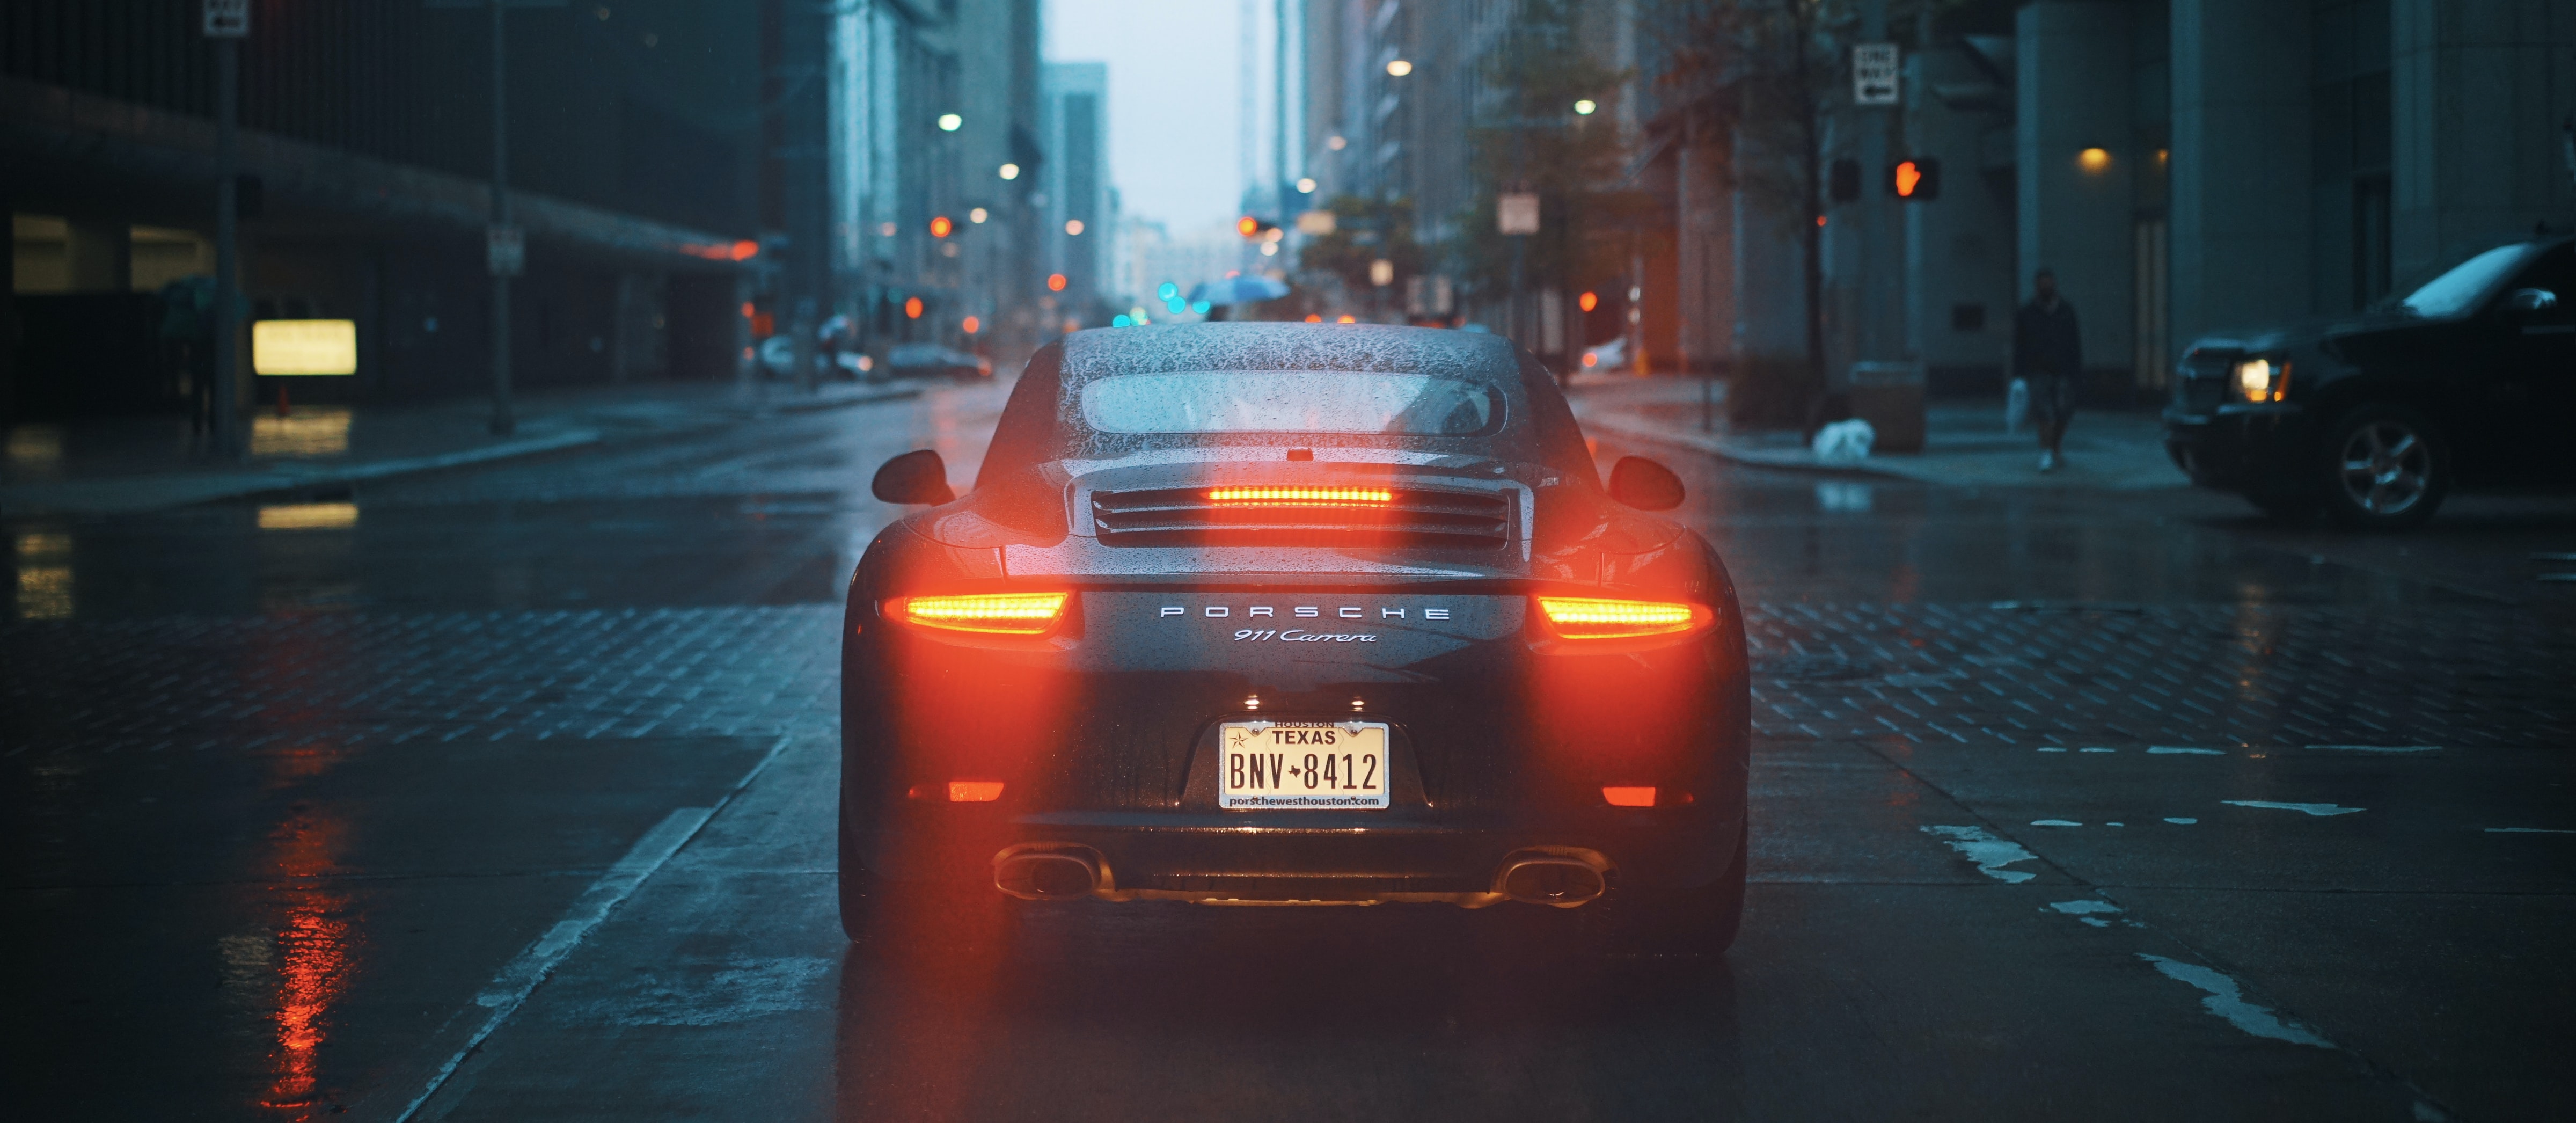 The back of a black Porsche 911 with its tail lights on on a wet street